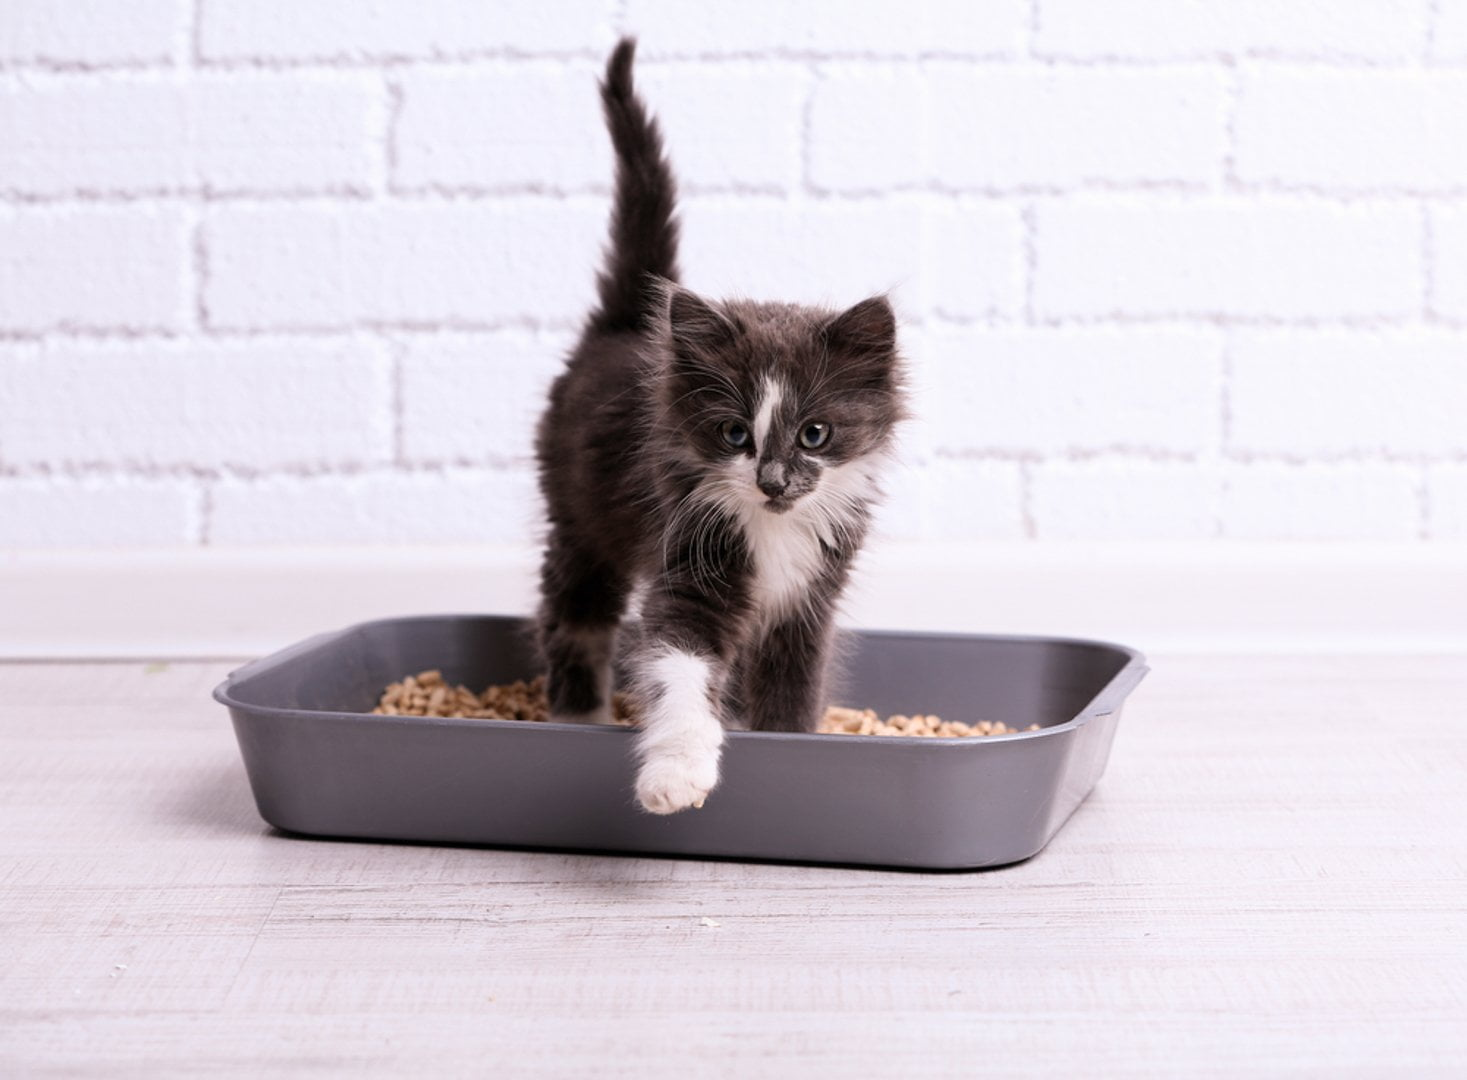 Why Does the Cat Refuse to Pee in a Litter Box?